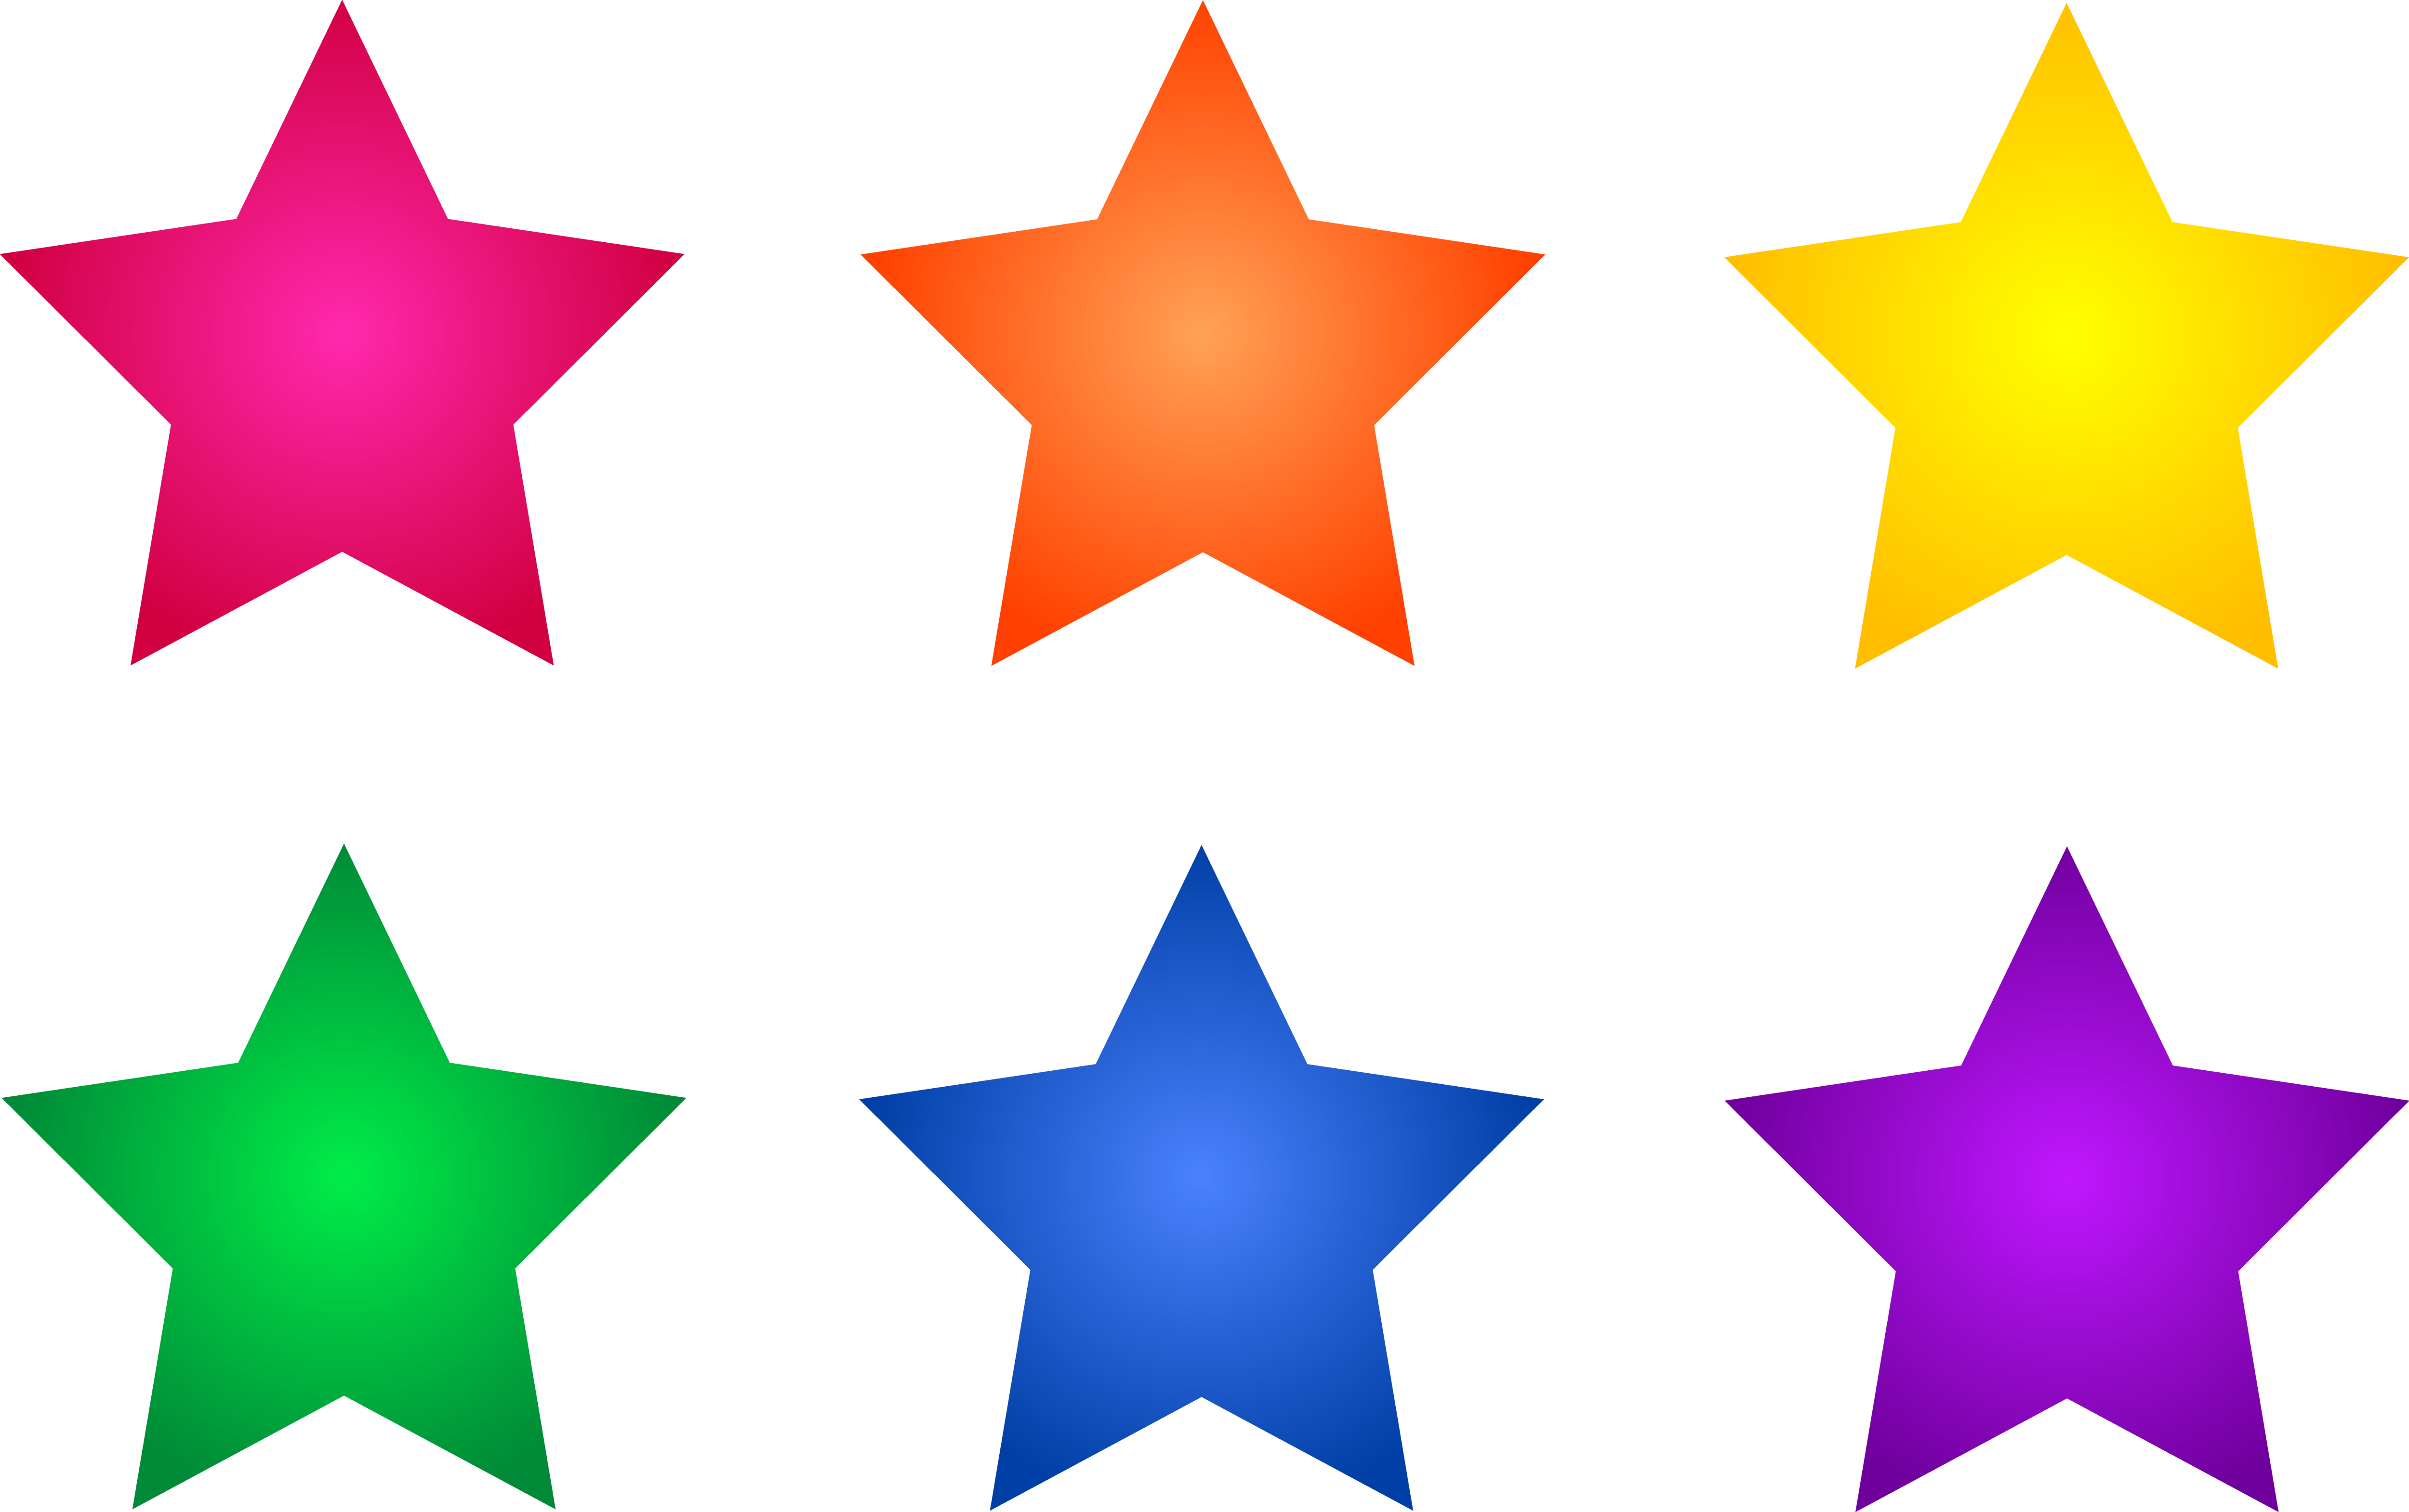 Clipart Abstract Colored Stars free image.